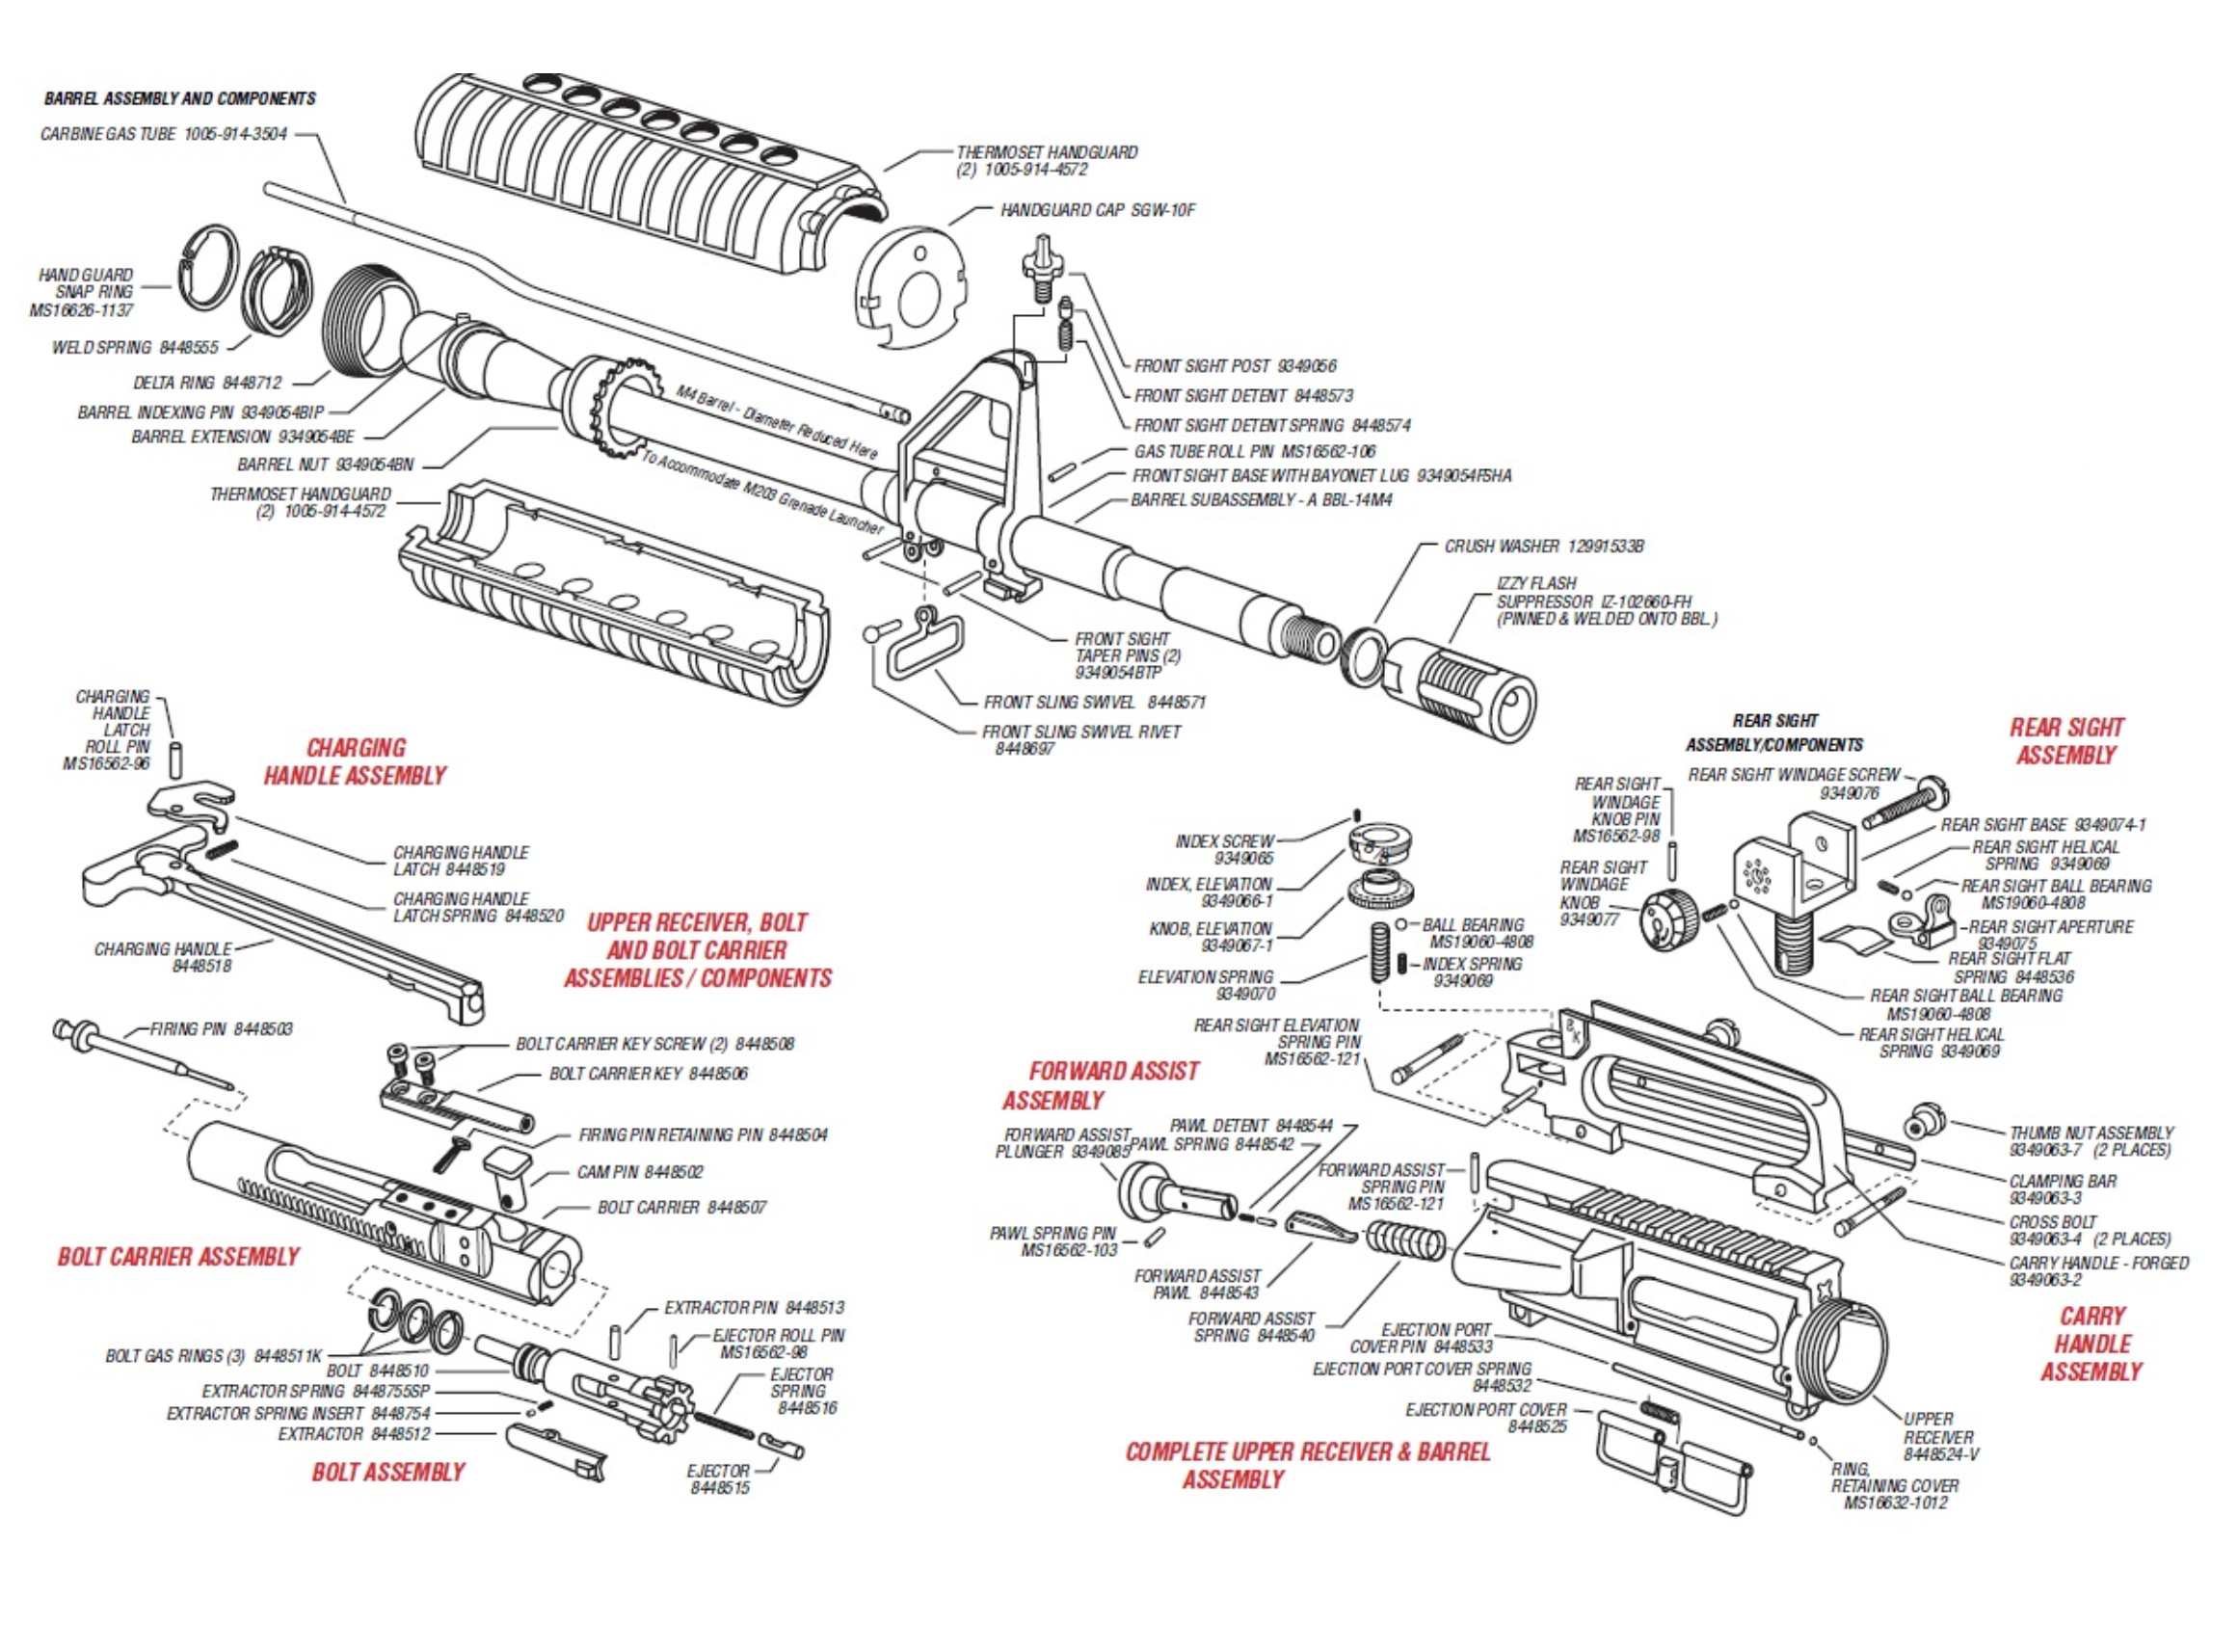 pin by pascal brody on shooting | ar15, lower receiver, ar ... ar 15 diagram pdf